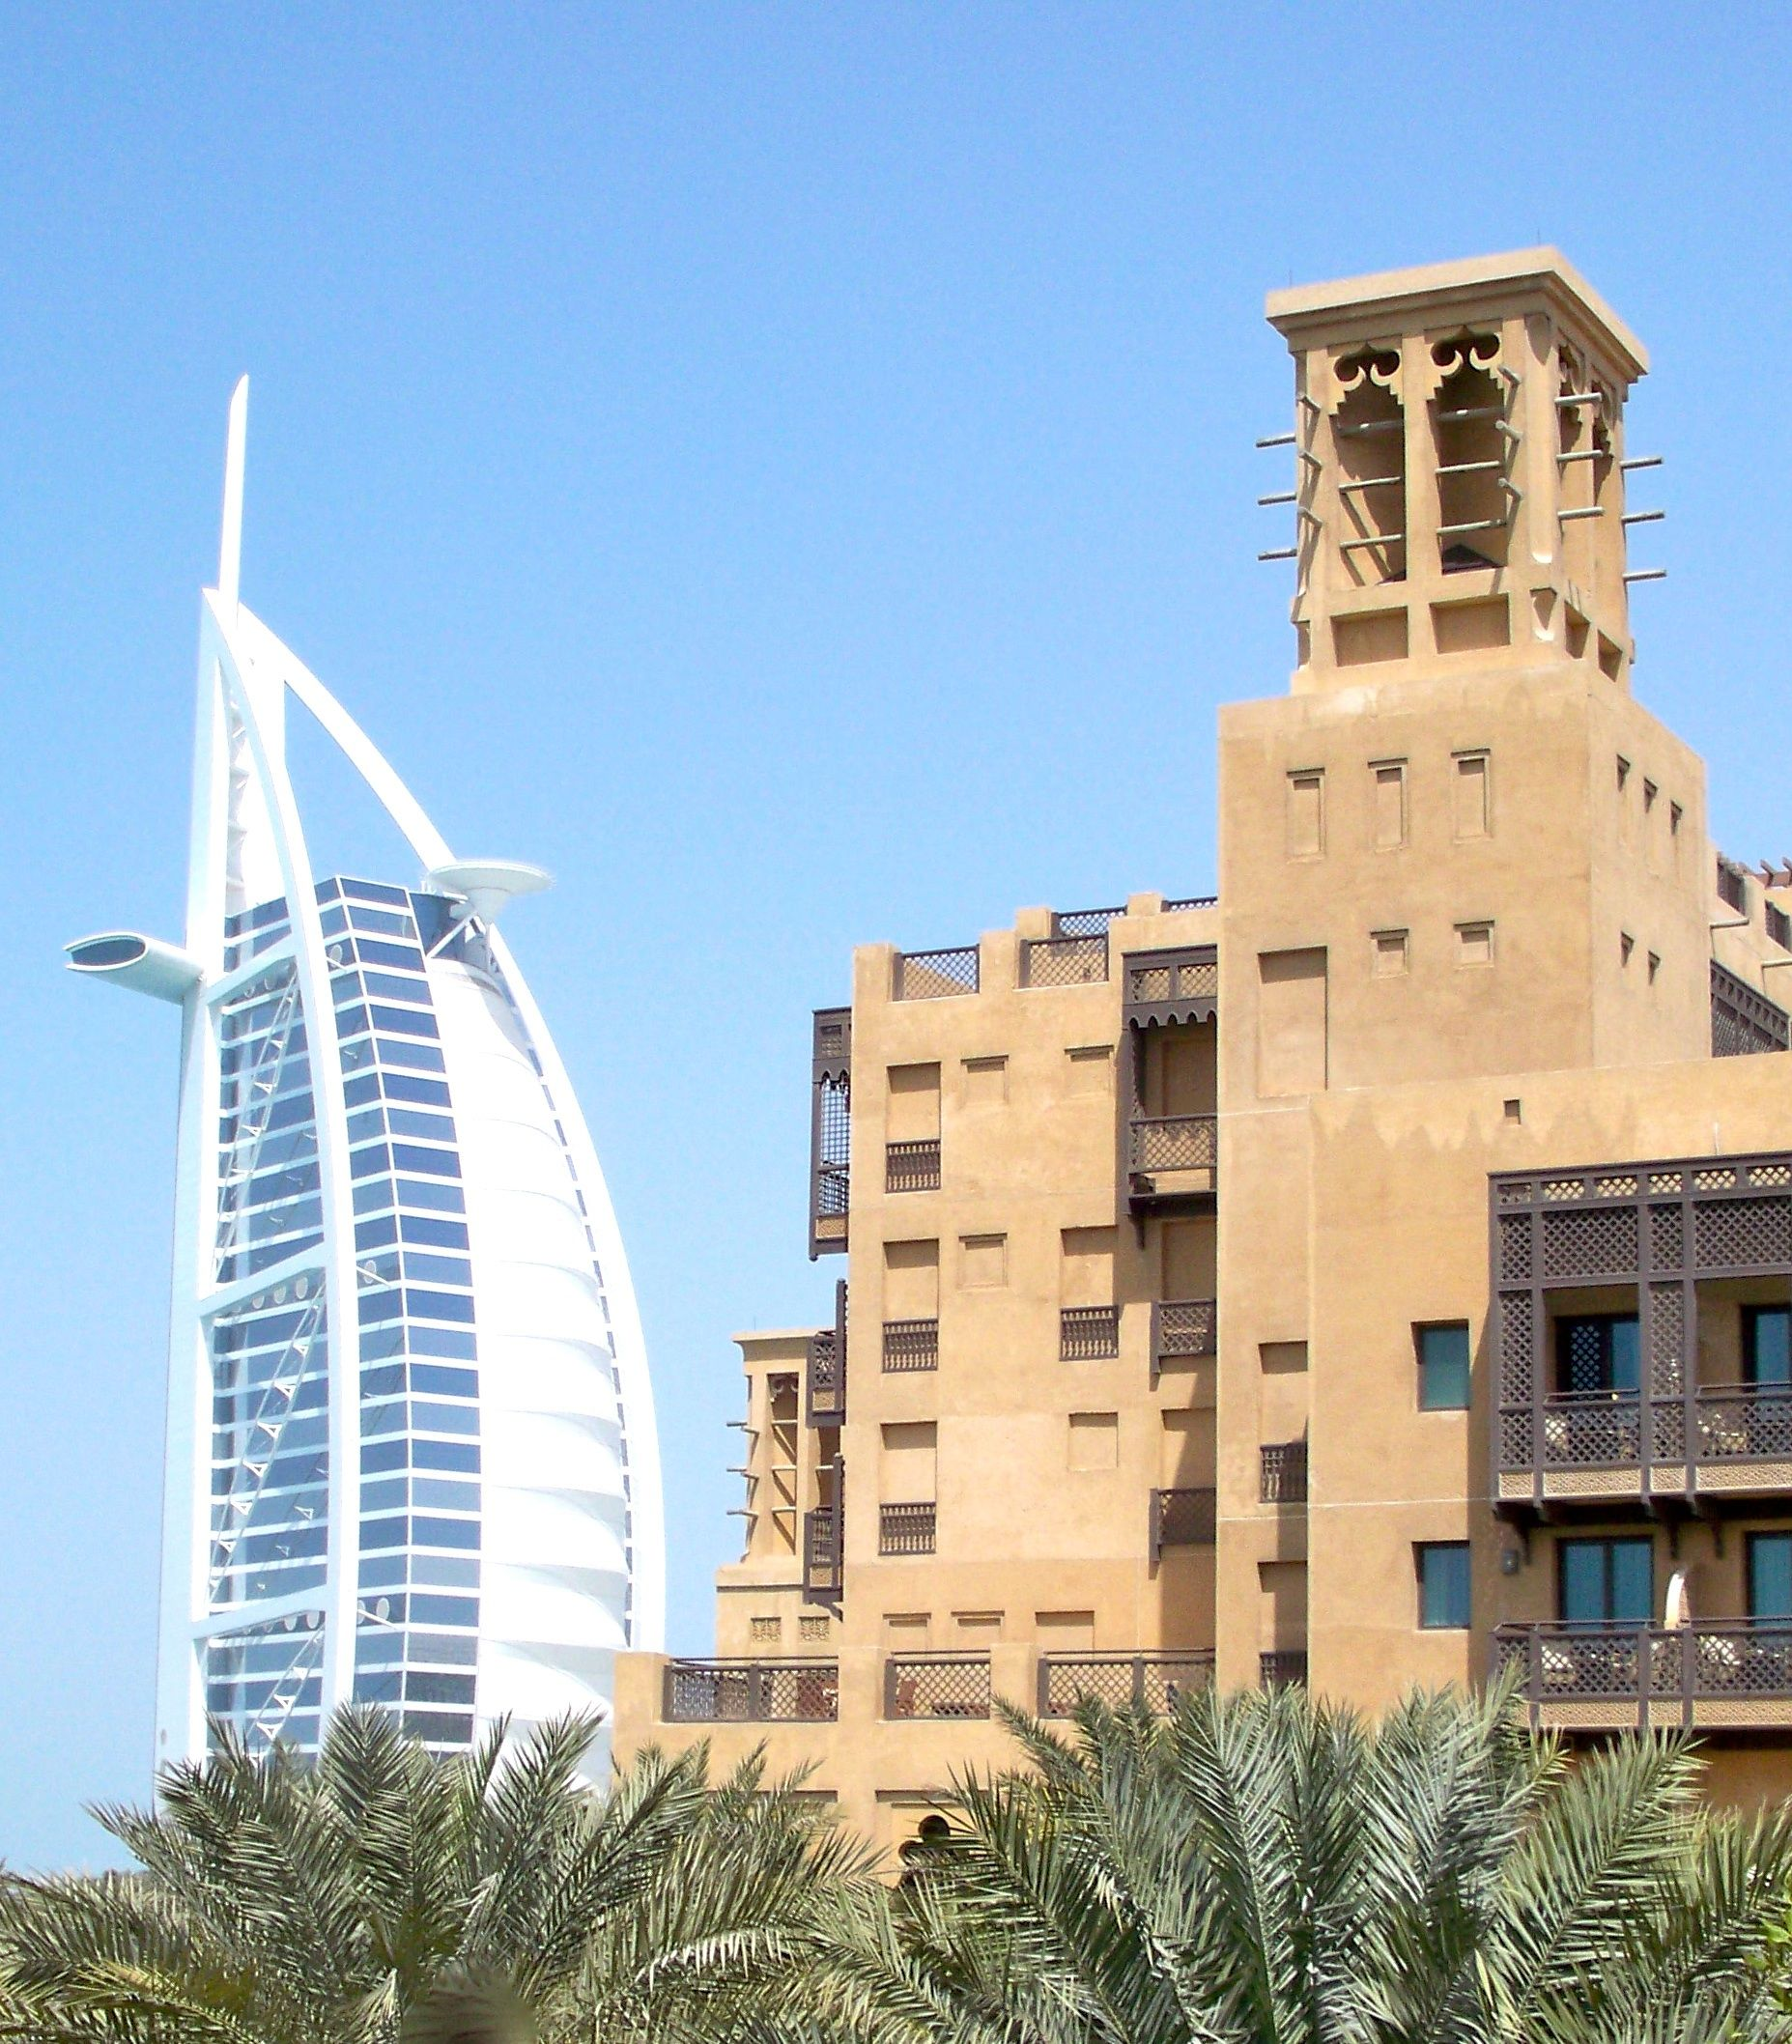 A view of the old and new in Dubai, United Arab Emirates.